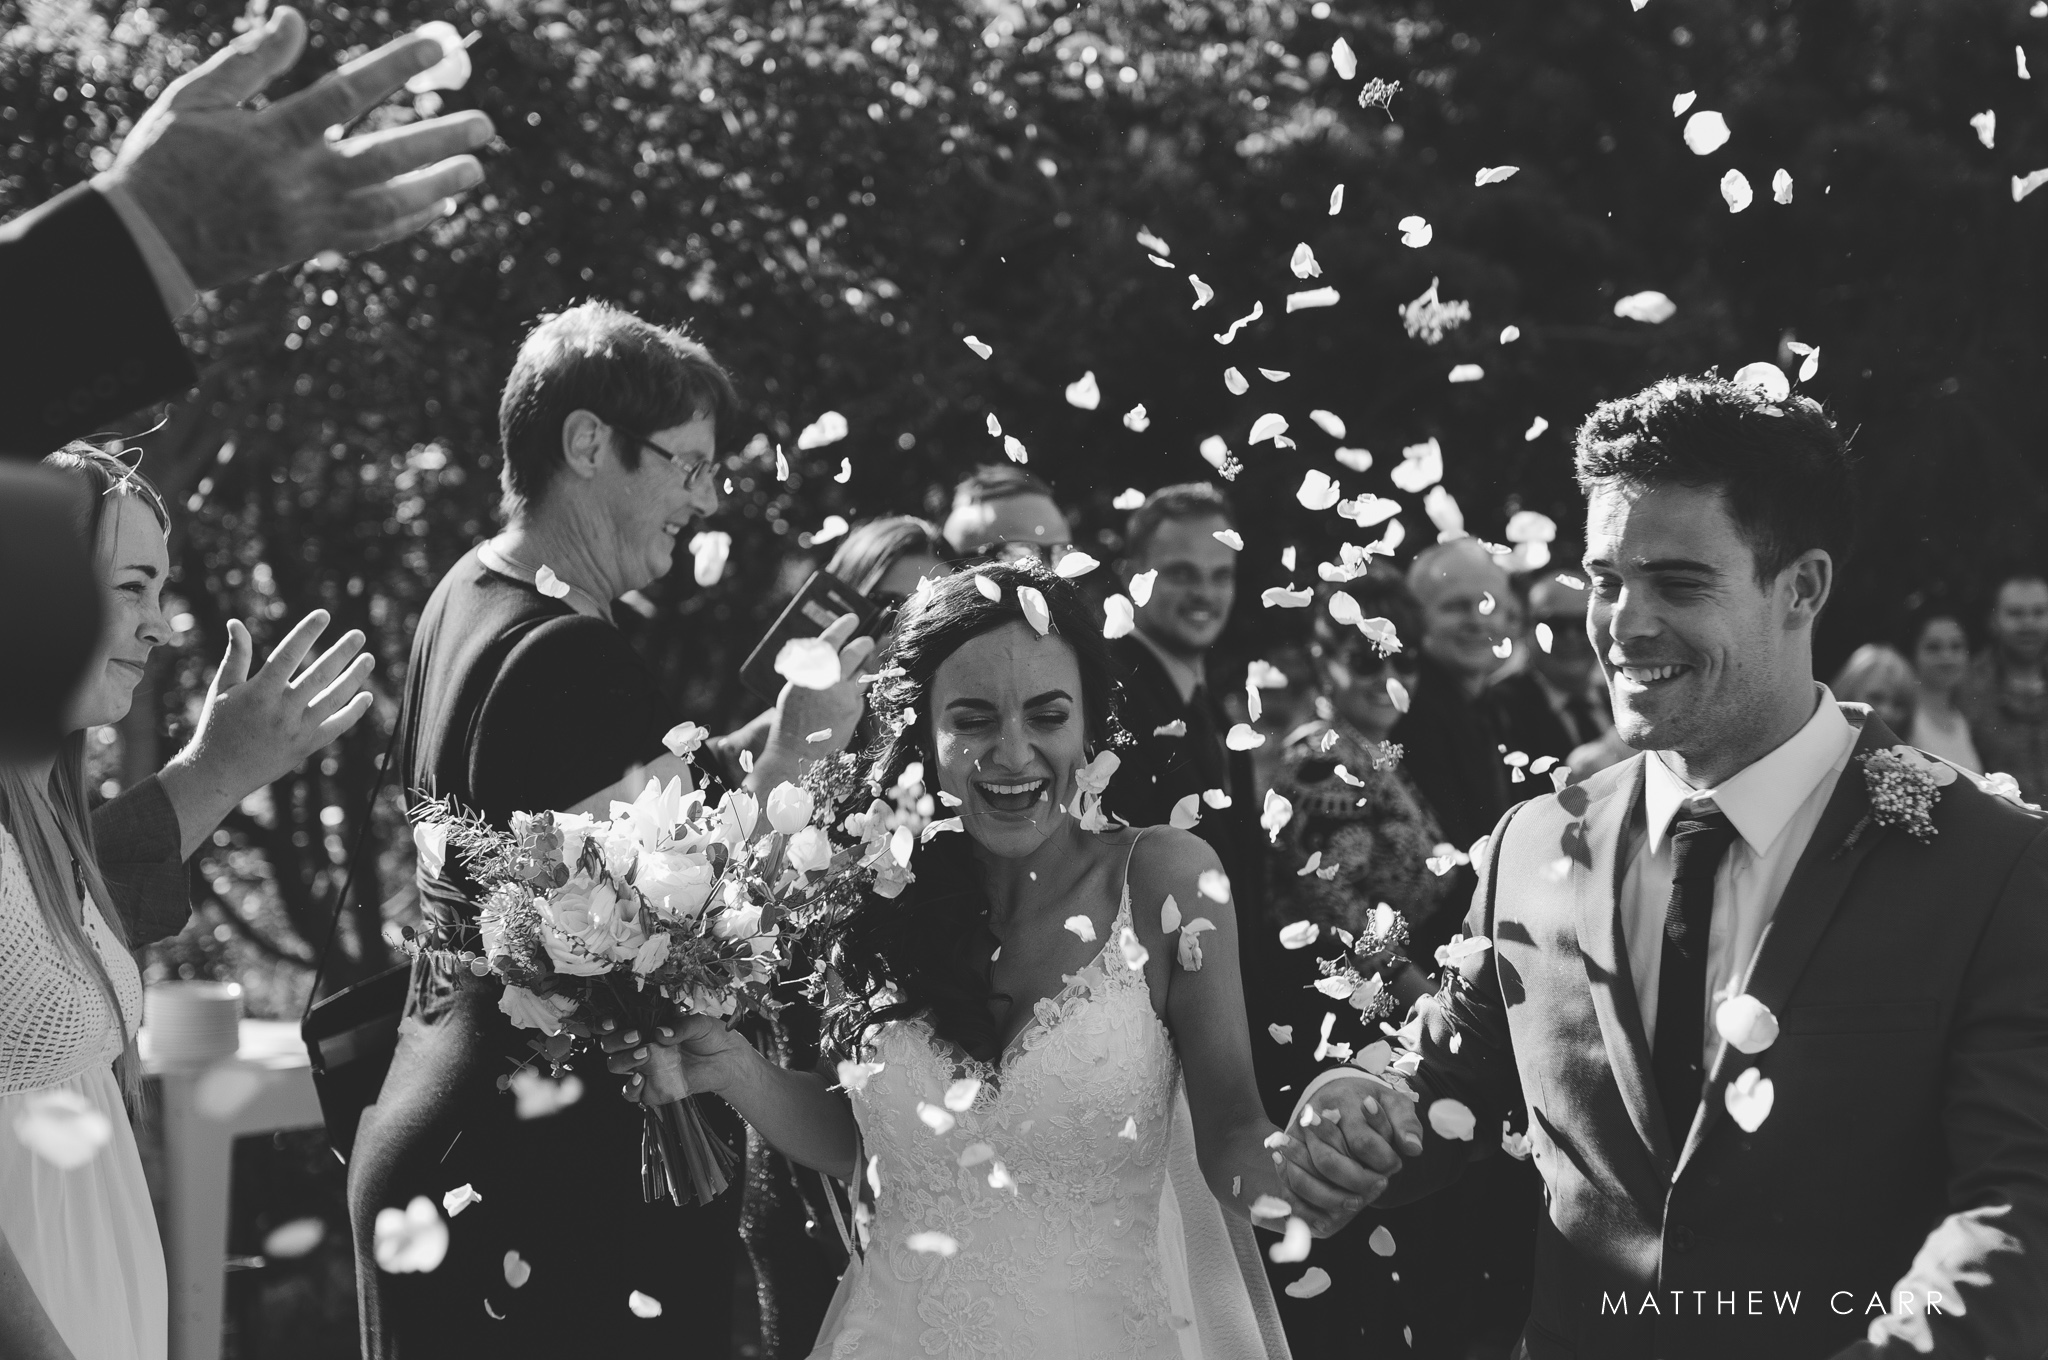 ceremony & after - low res (viewing, social media) (93 of 111).JPG